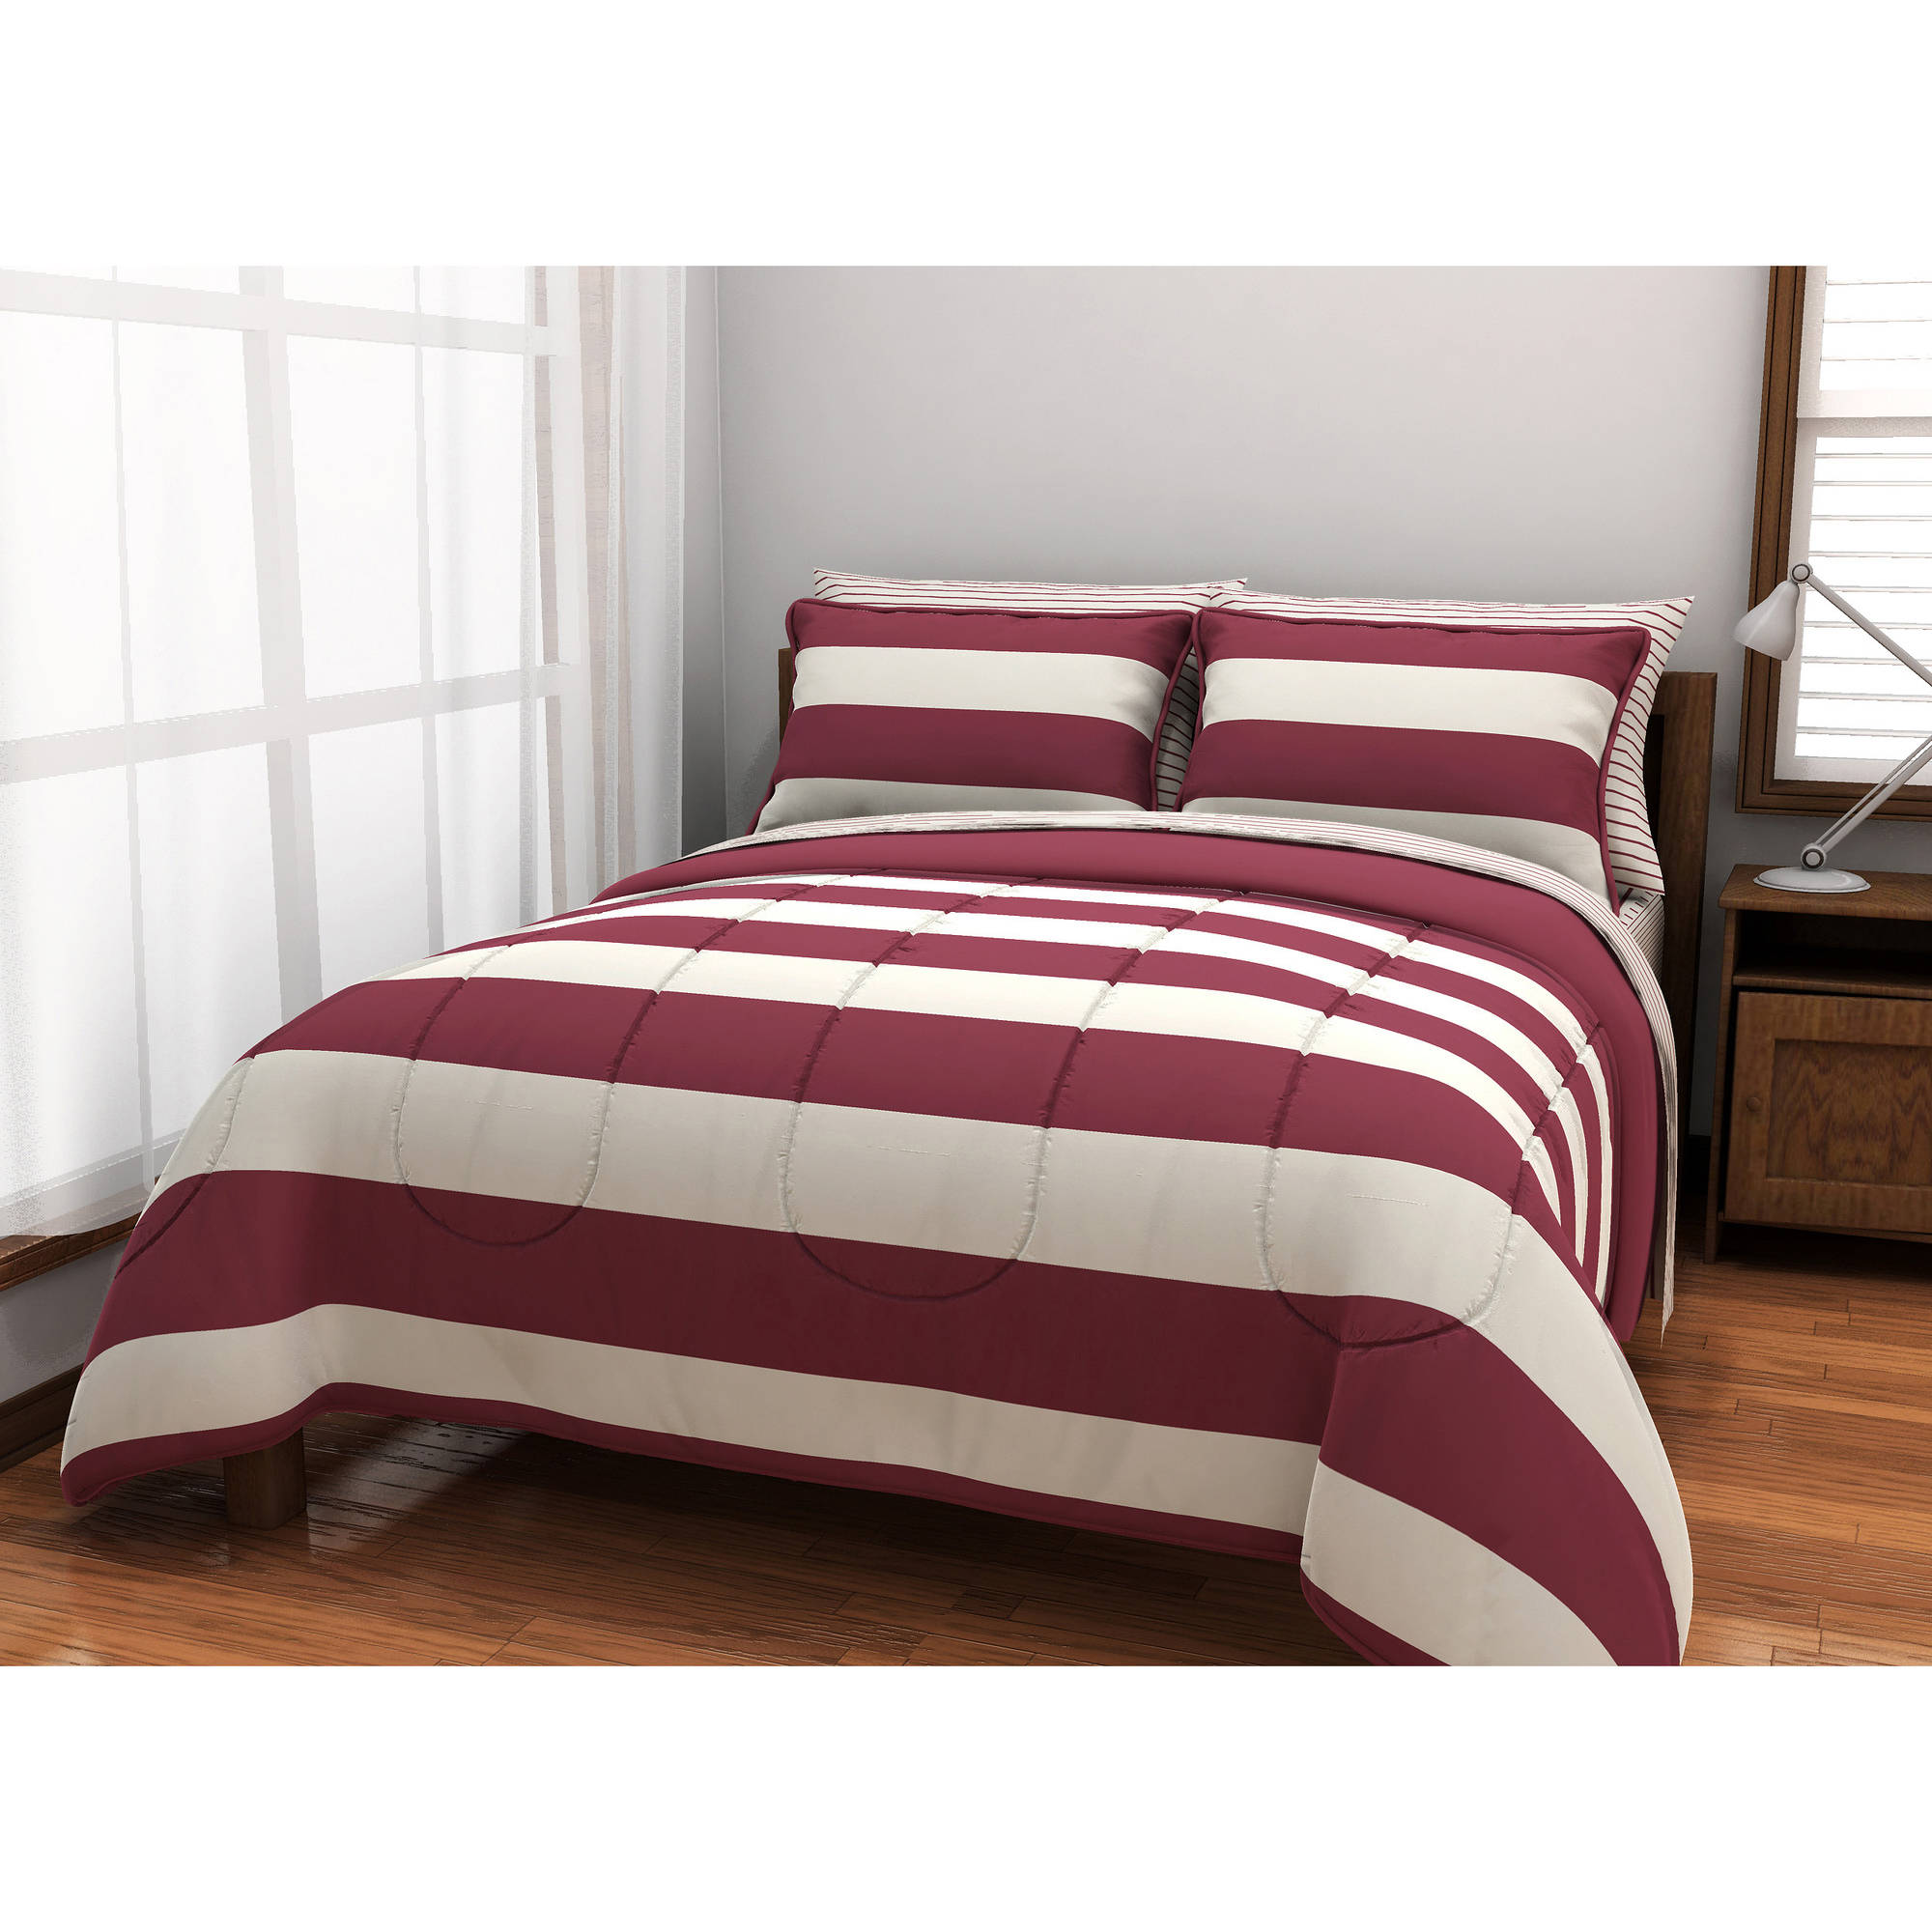 American Originals Rugby Stripe Bed in a Bag Bedding Set